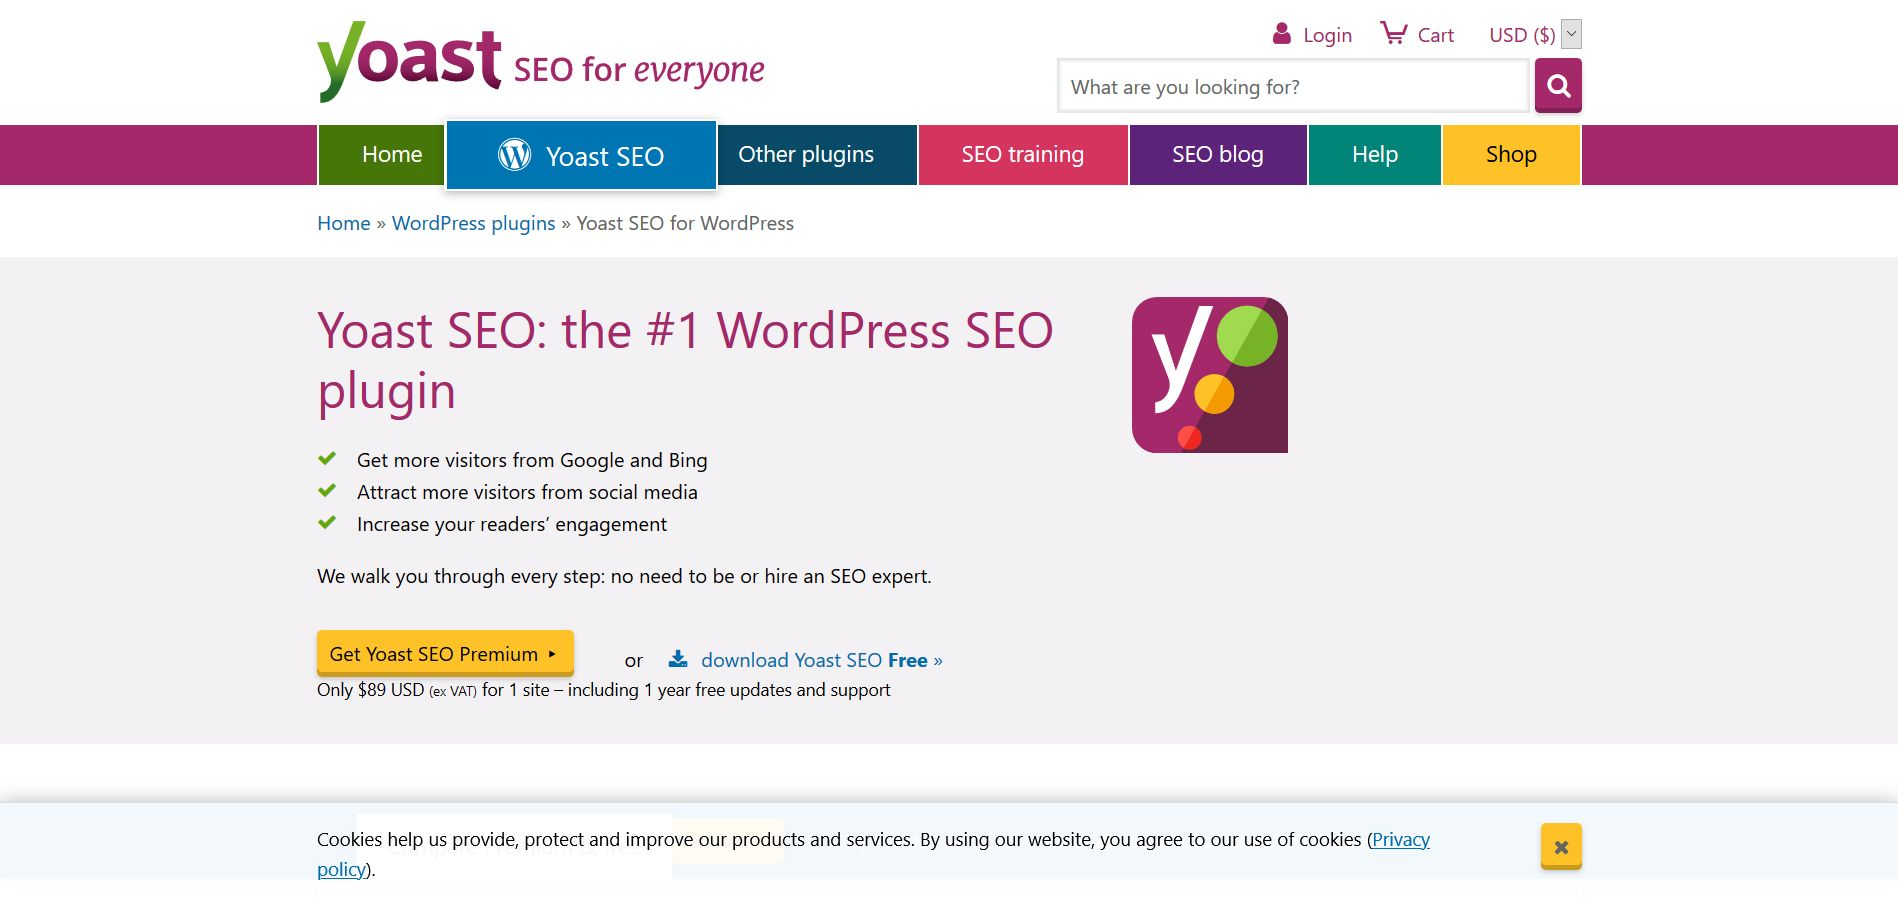 Yoast SEO the #1 WordPress SEO plugin